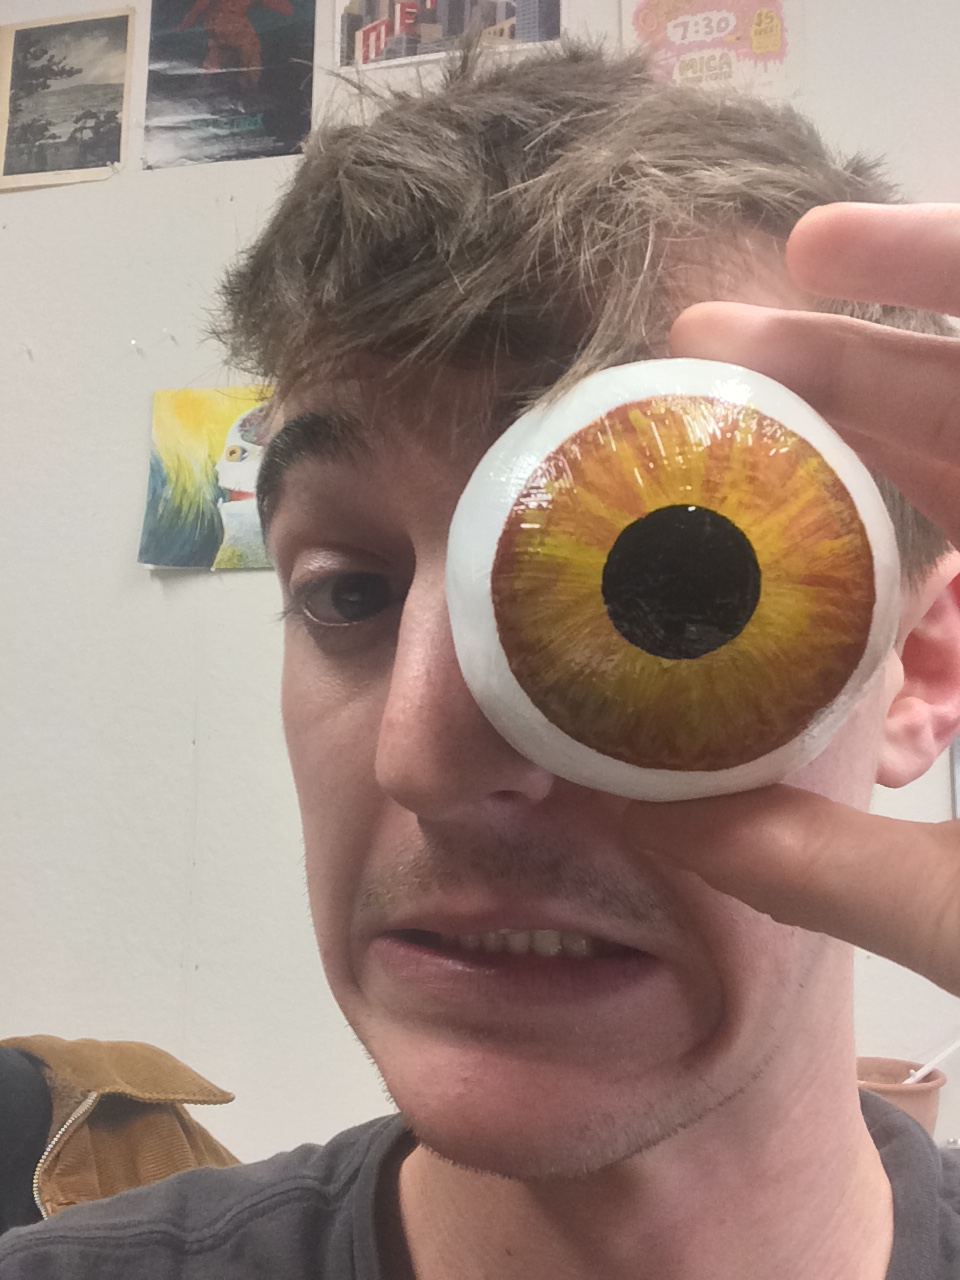 Yesterday I made a BIG eye.